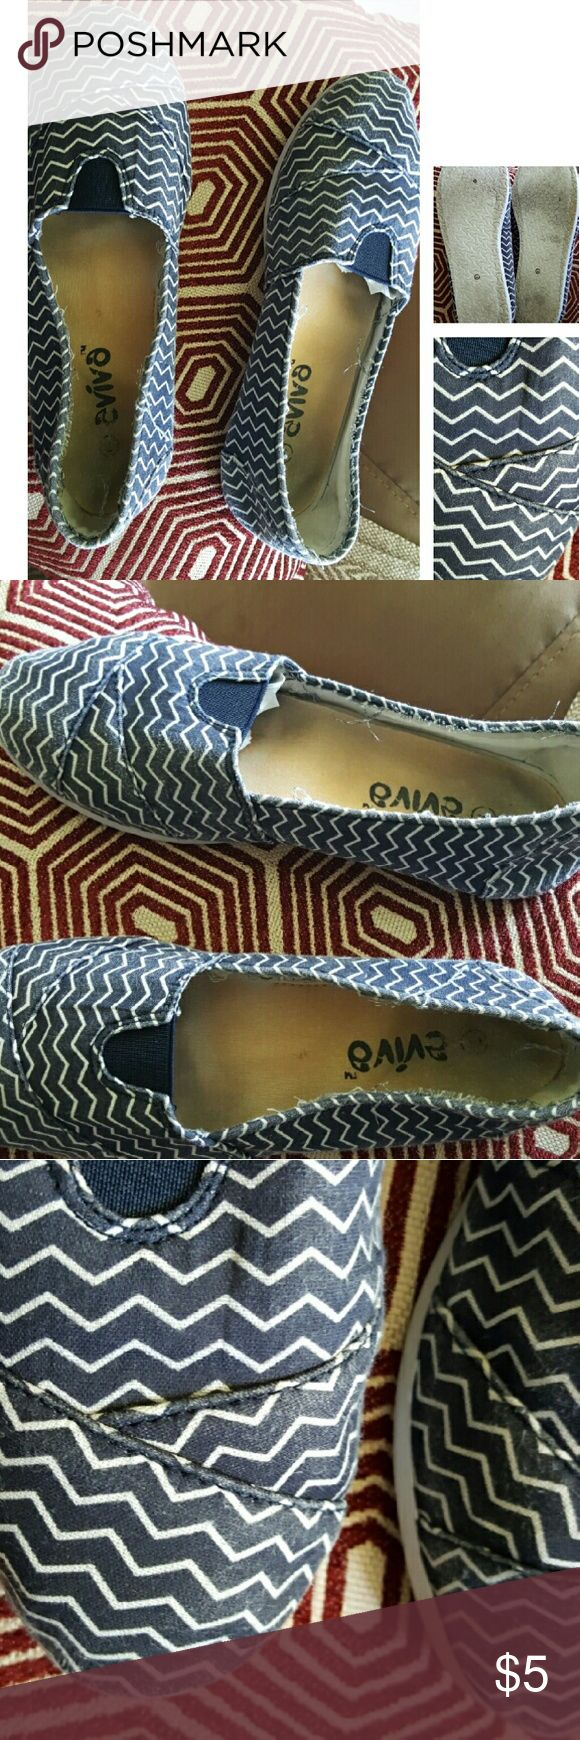 Cute Flats Blue & White Blue and white flats still in good condition. However they've obviously been used Shoes Espadrilles